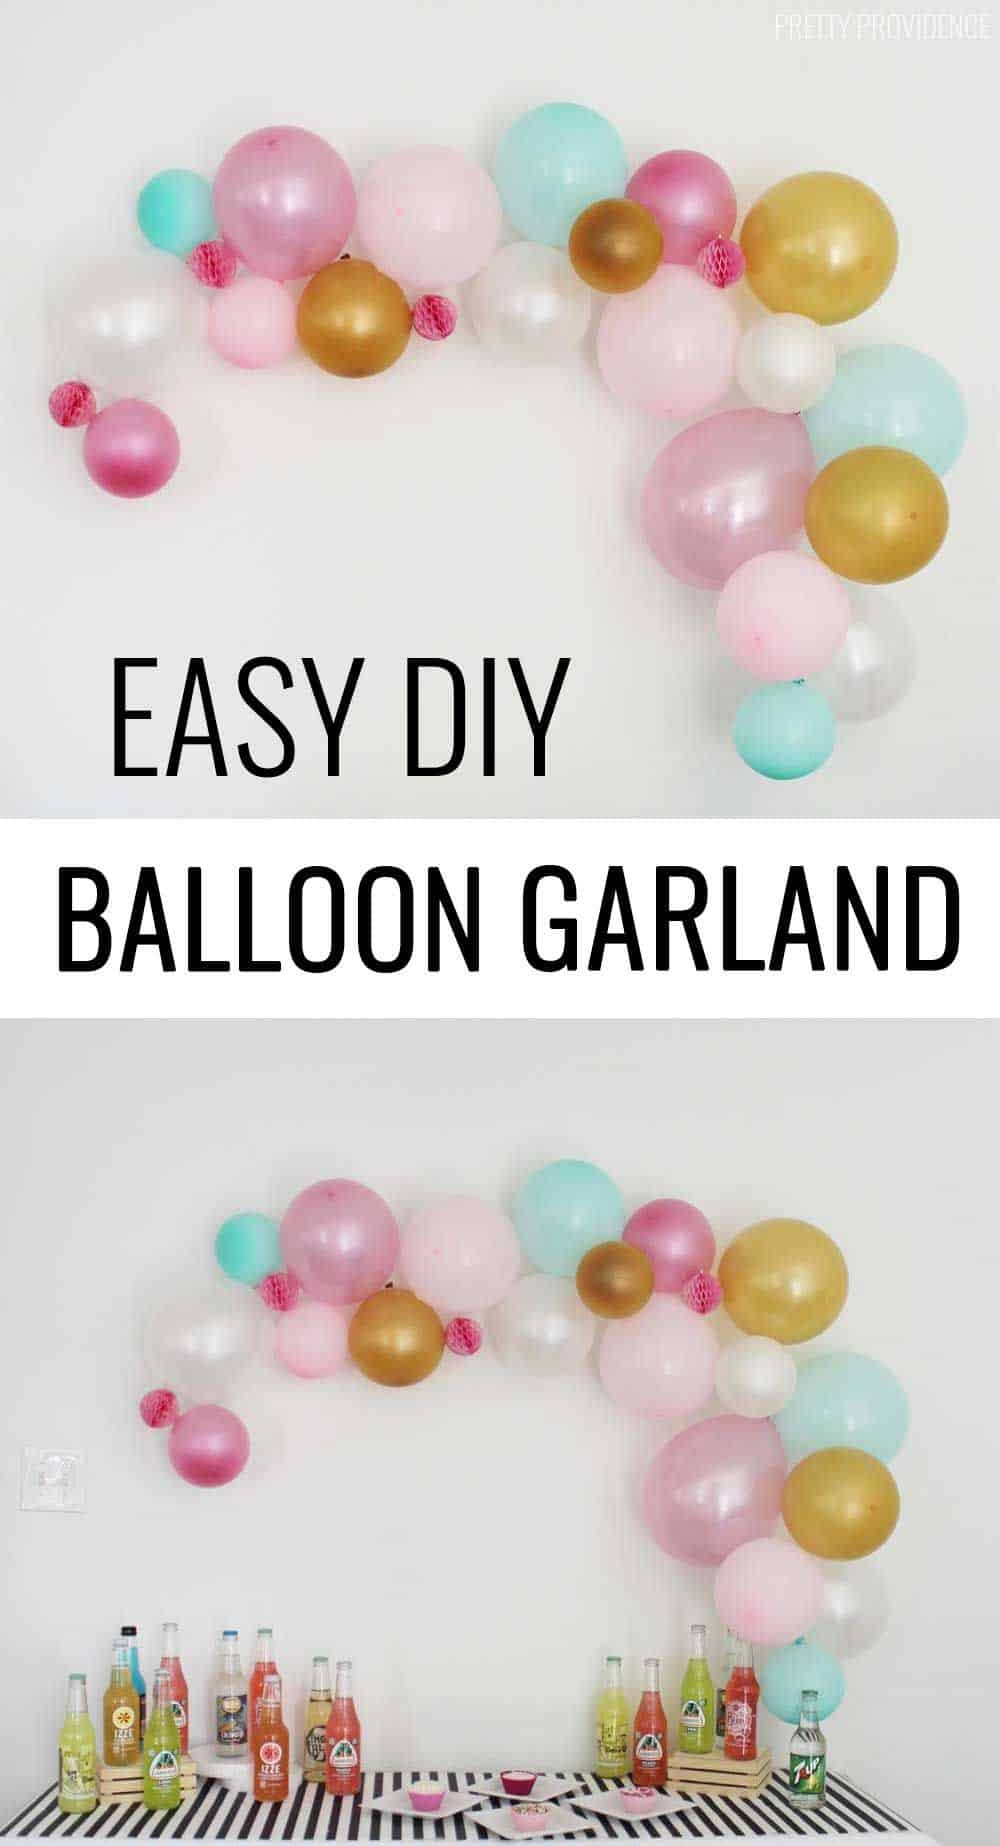 Easy diy balloon garland